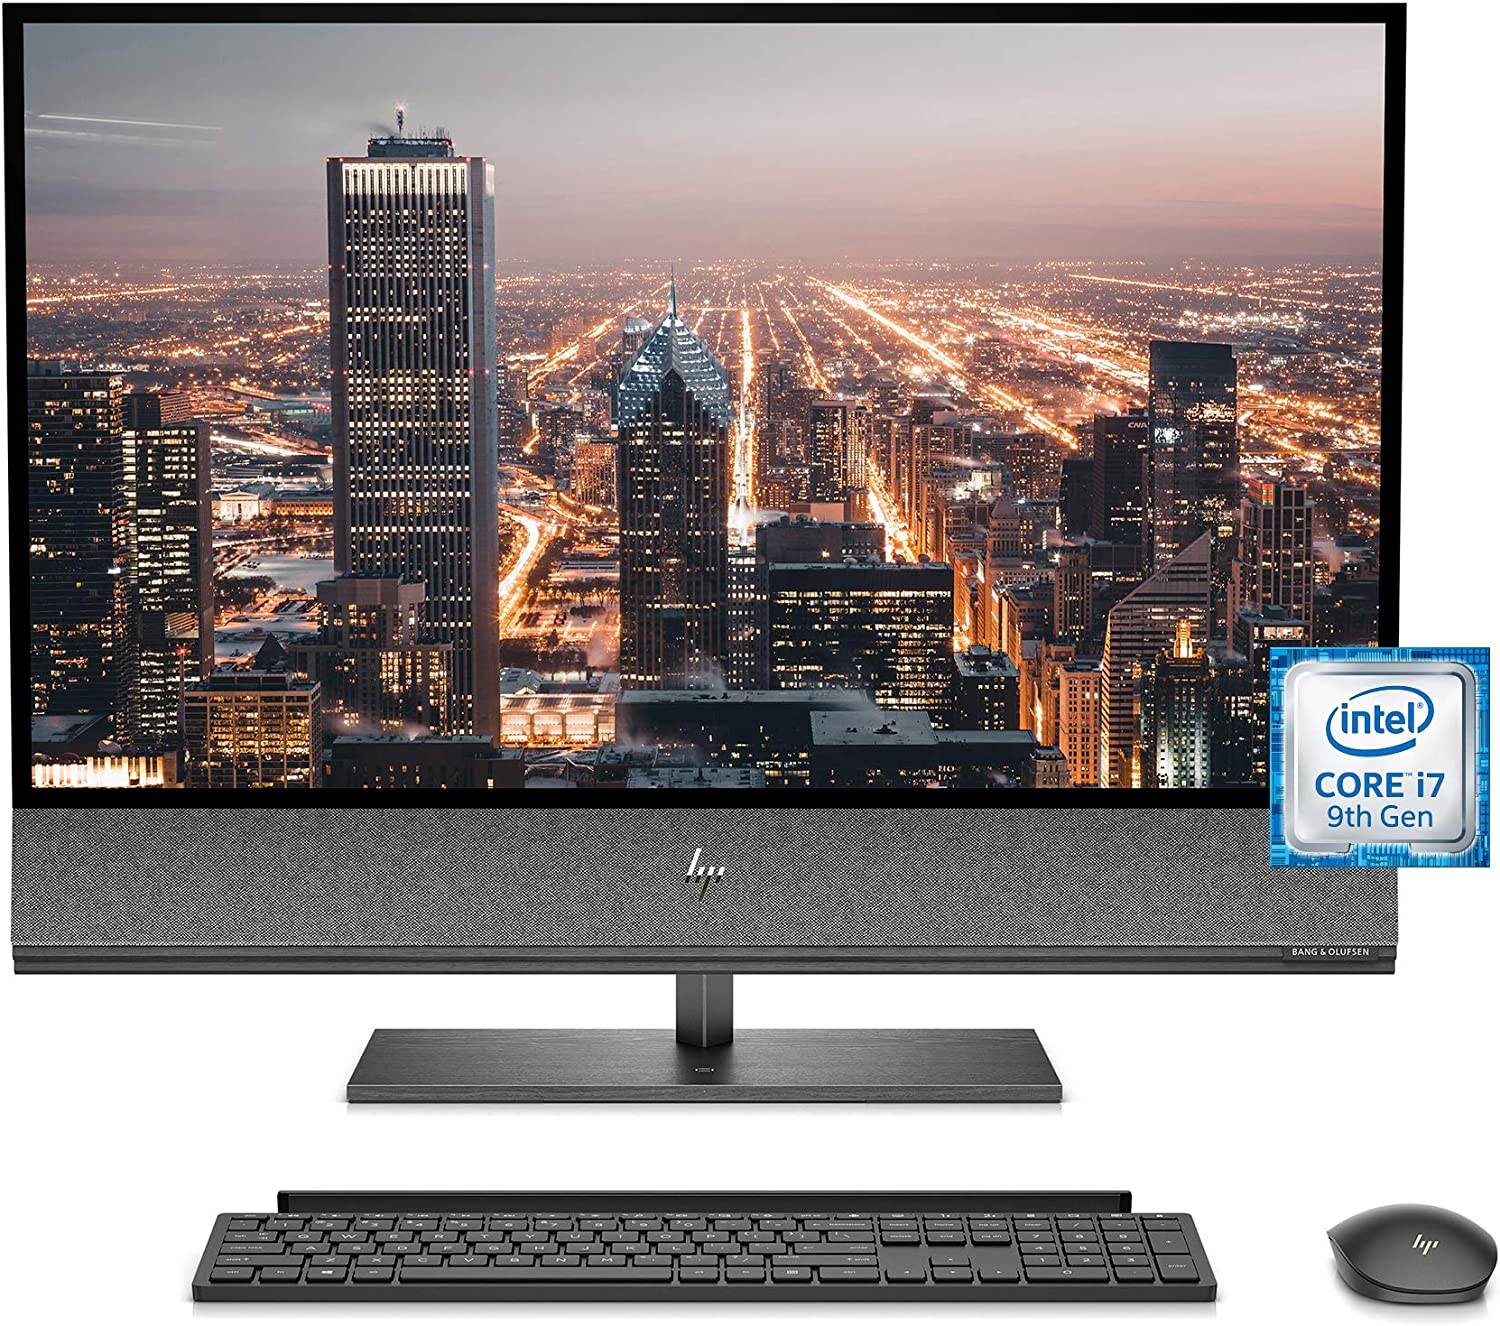 HP Envy 32 All-in-One Computer, 9th Gen Intel Core i7-9700 Processor, 4K UHD Monitor, NVIDIA GeForce GTX 1650 Graphics (4 GB), 16 GB RAM, 1 TB SSD, Windows 10 (32-a0010, Nightfall Black)